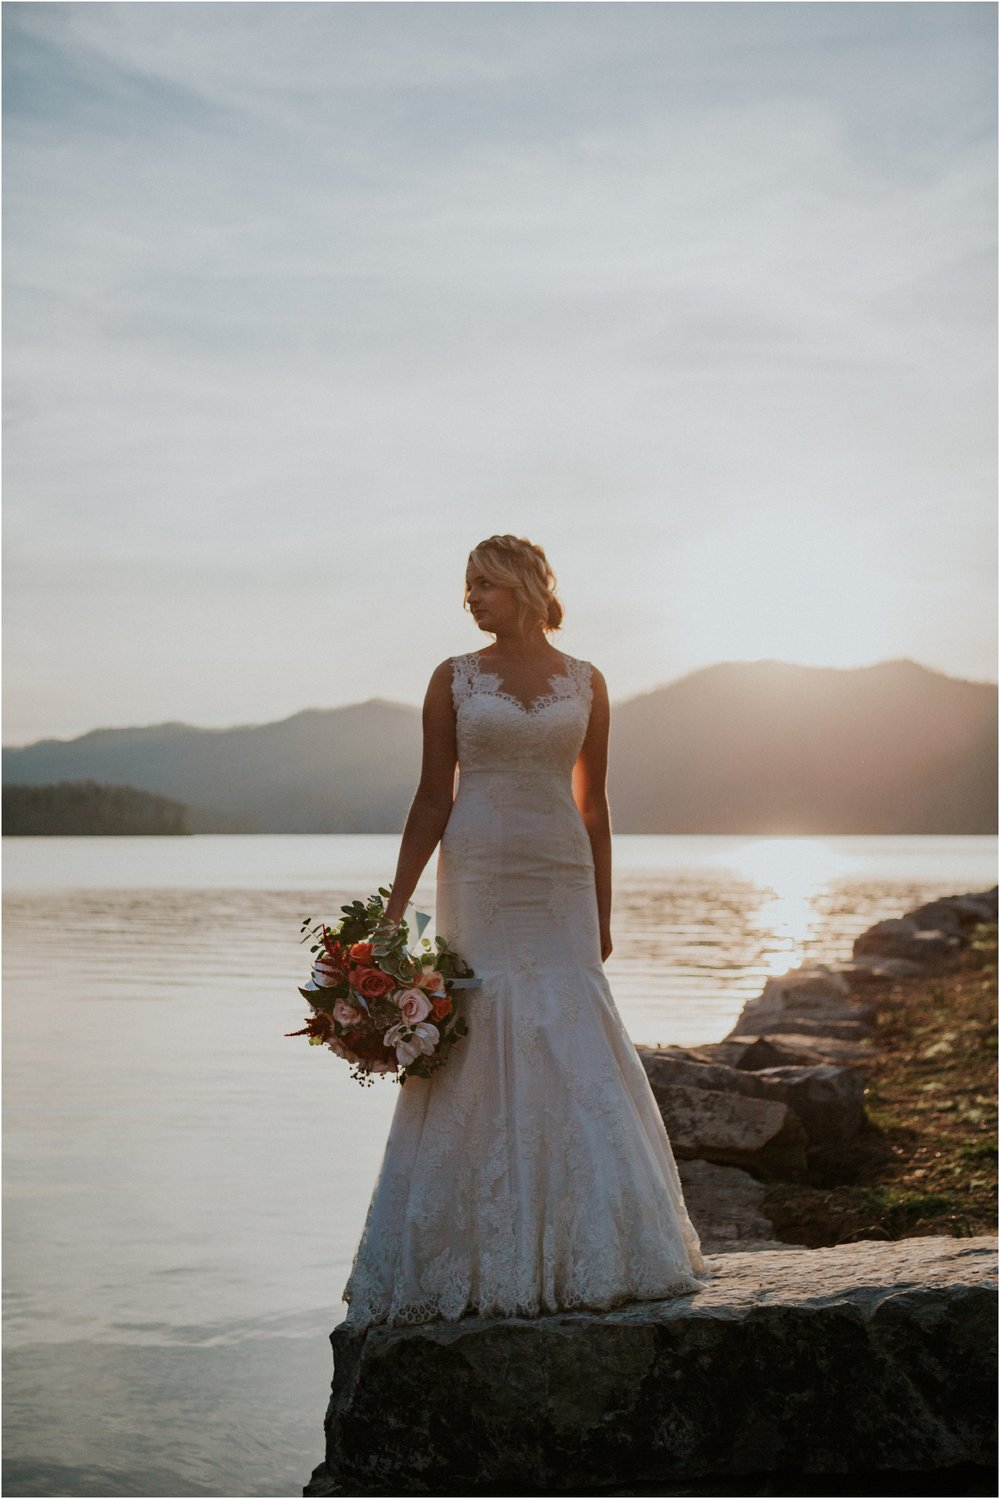 watauga-lake--bohemian-bridal-styled-session-northeast-tennessee-wedding-elopement-photography_0009.jpg